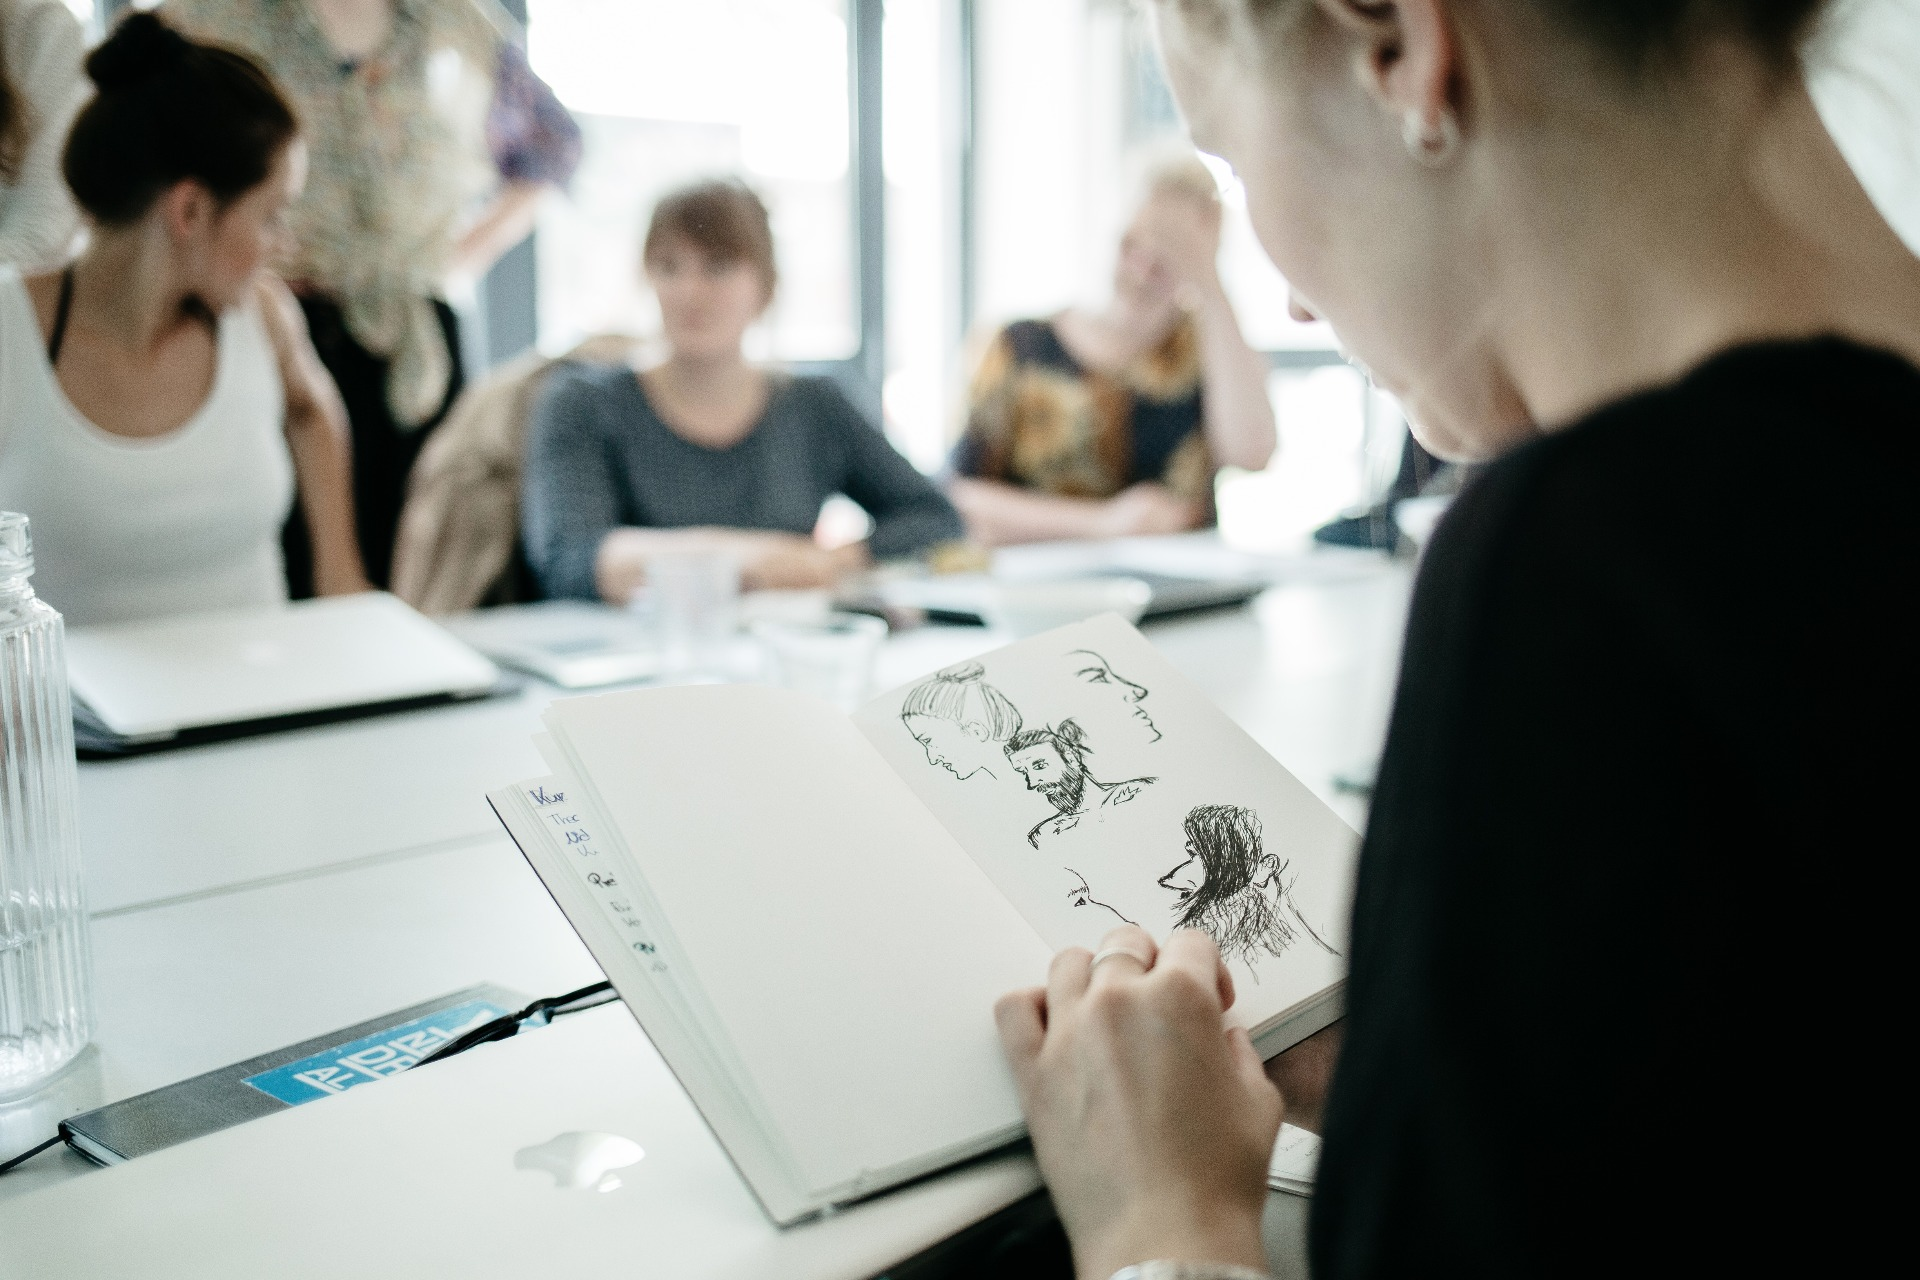 Illustration studieren an der ecosign